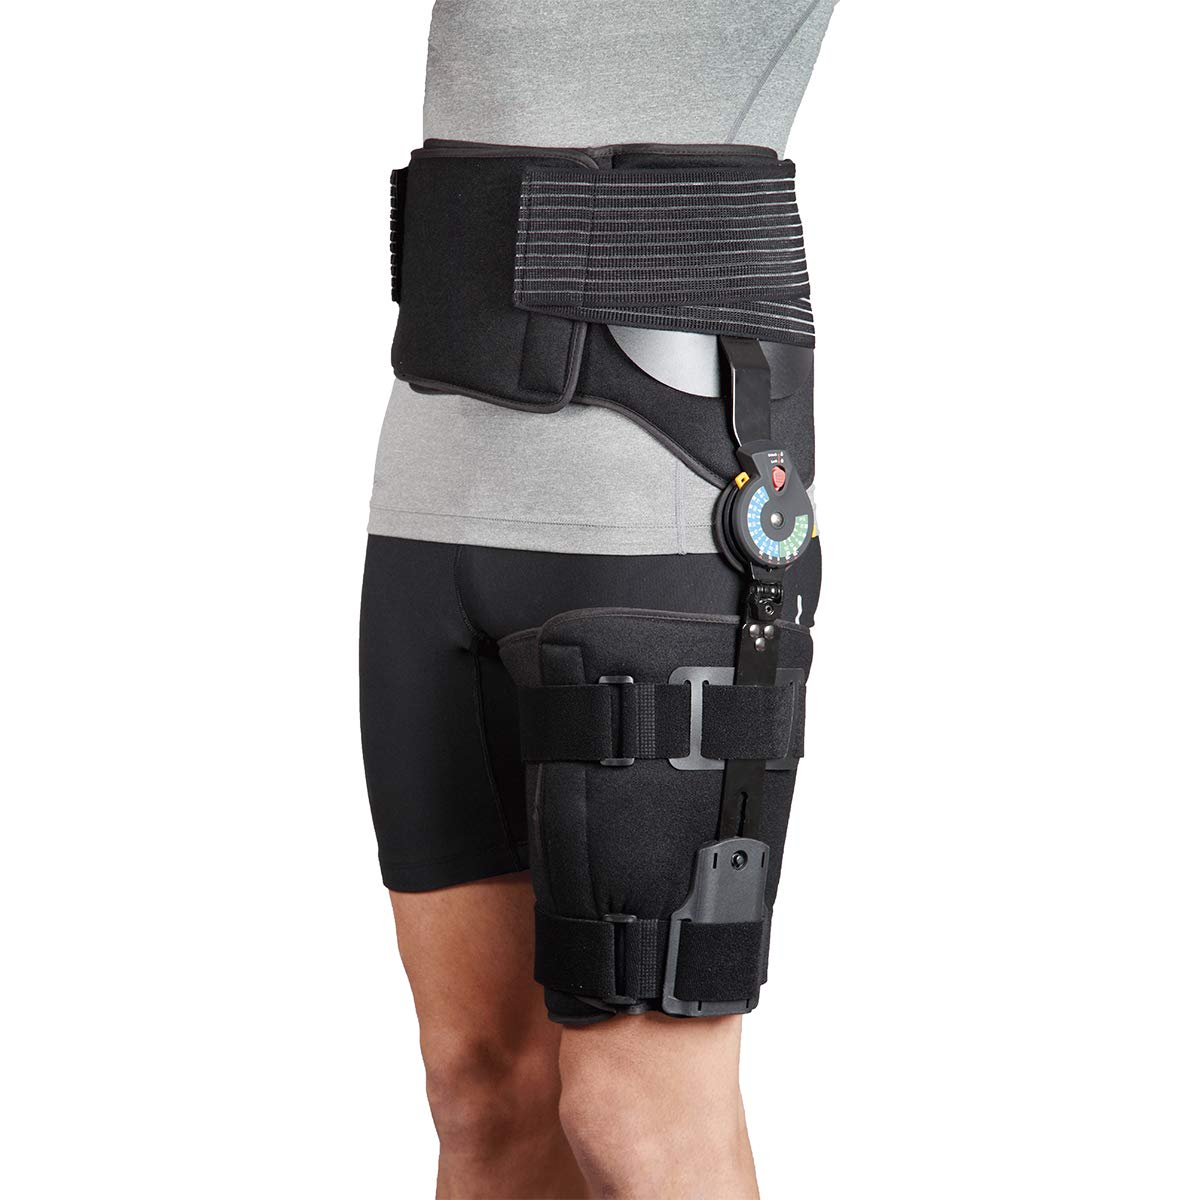 Orthomen ROM Post Op Hip Abduction Brace for Hip Replacement Surgery, Recovery and Rehab(Left)